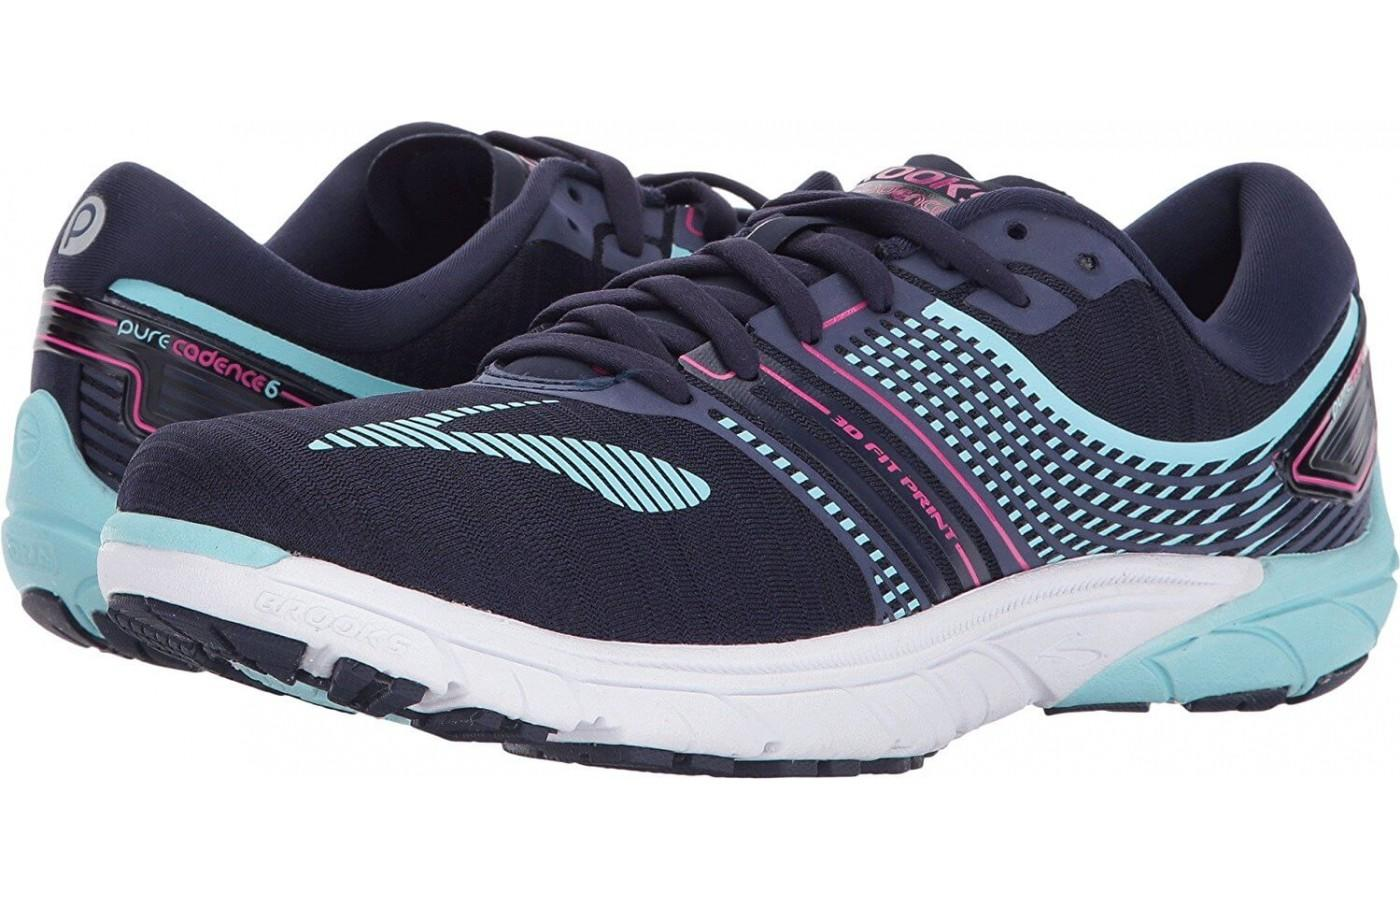 Pair of Brooks PureCadence 6 in teal and dark blue